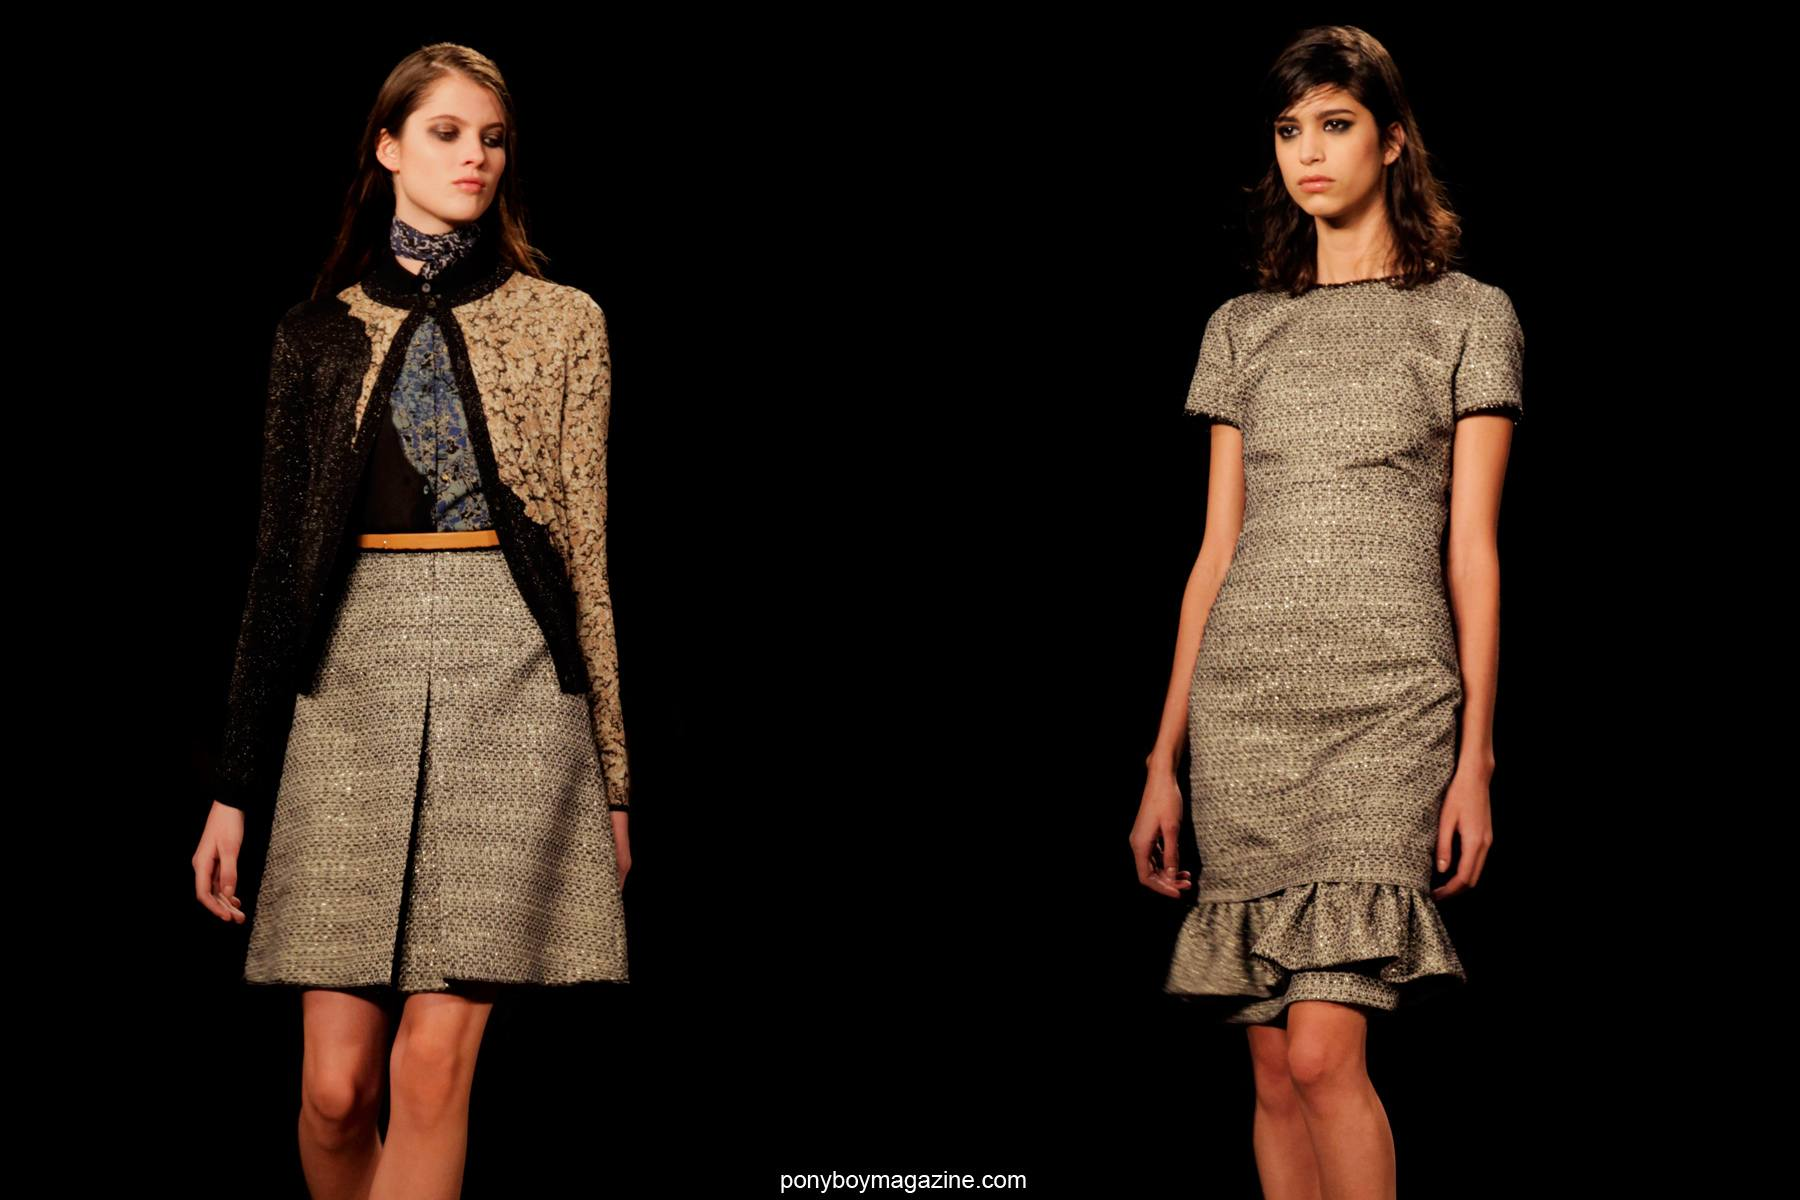 Models for Sophie Theallet A/W 2014 runway show, photographed by Alexander Thompson for Ponyboy Magazine.